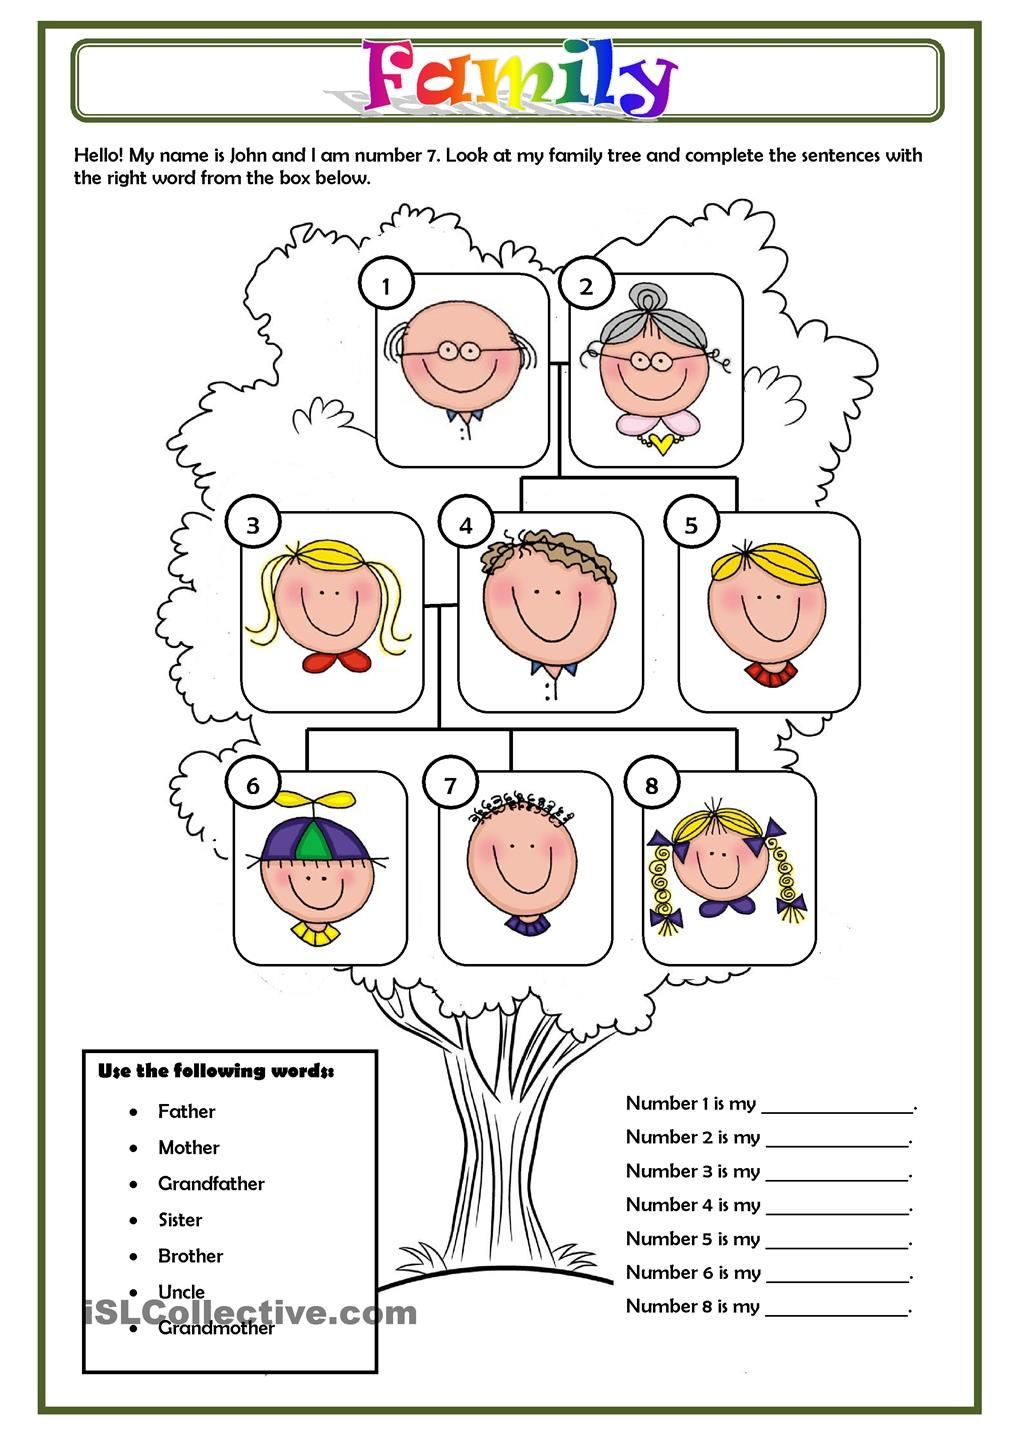 Worksheets Family Tree Worksheet For Kids family spanish familia unit pinterest english worksheets and vocab tree worksheet activity free esl printable made by teachers